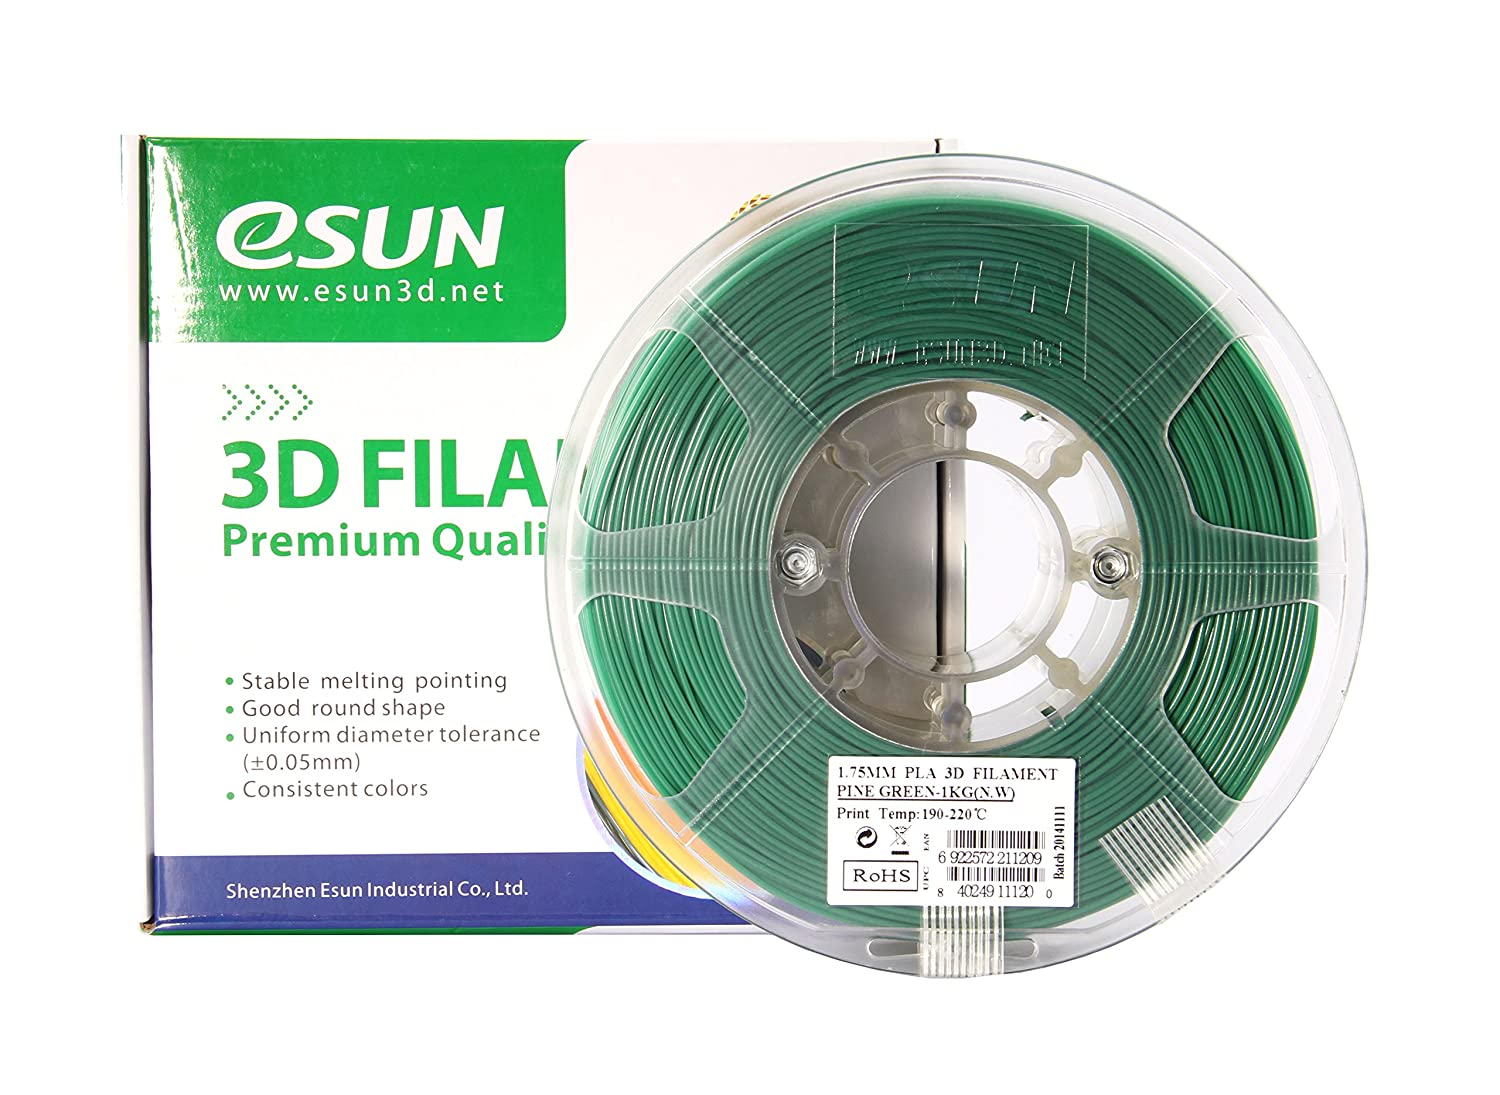 Color printing csun - Amazon Com Esun 1 75mm Pine Green Pla 3d Printer Filament 1kg Spool 2 2lbs Pine Green Industrial Scientific